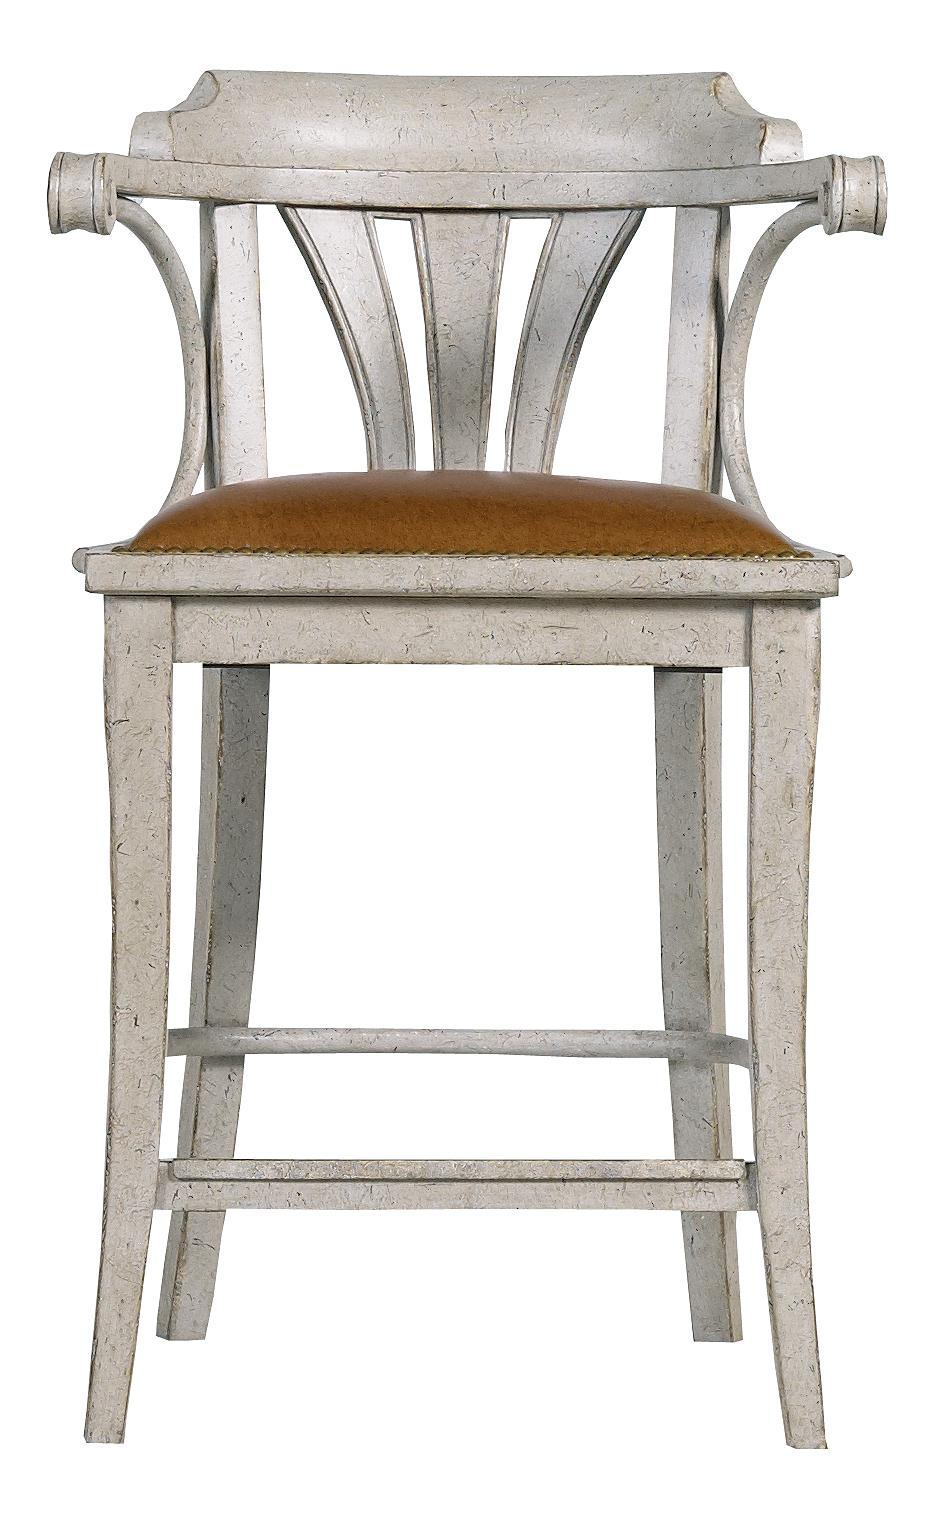 Stanley Furniture Arrondissement Soleil Counter Stool With Leather Seat    AHFA   Bar Stool Dealer Locator